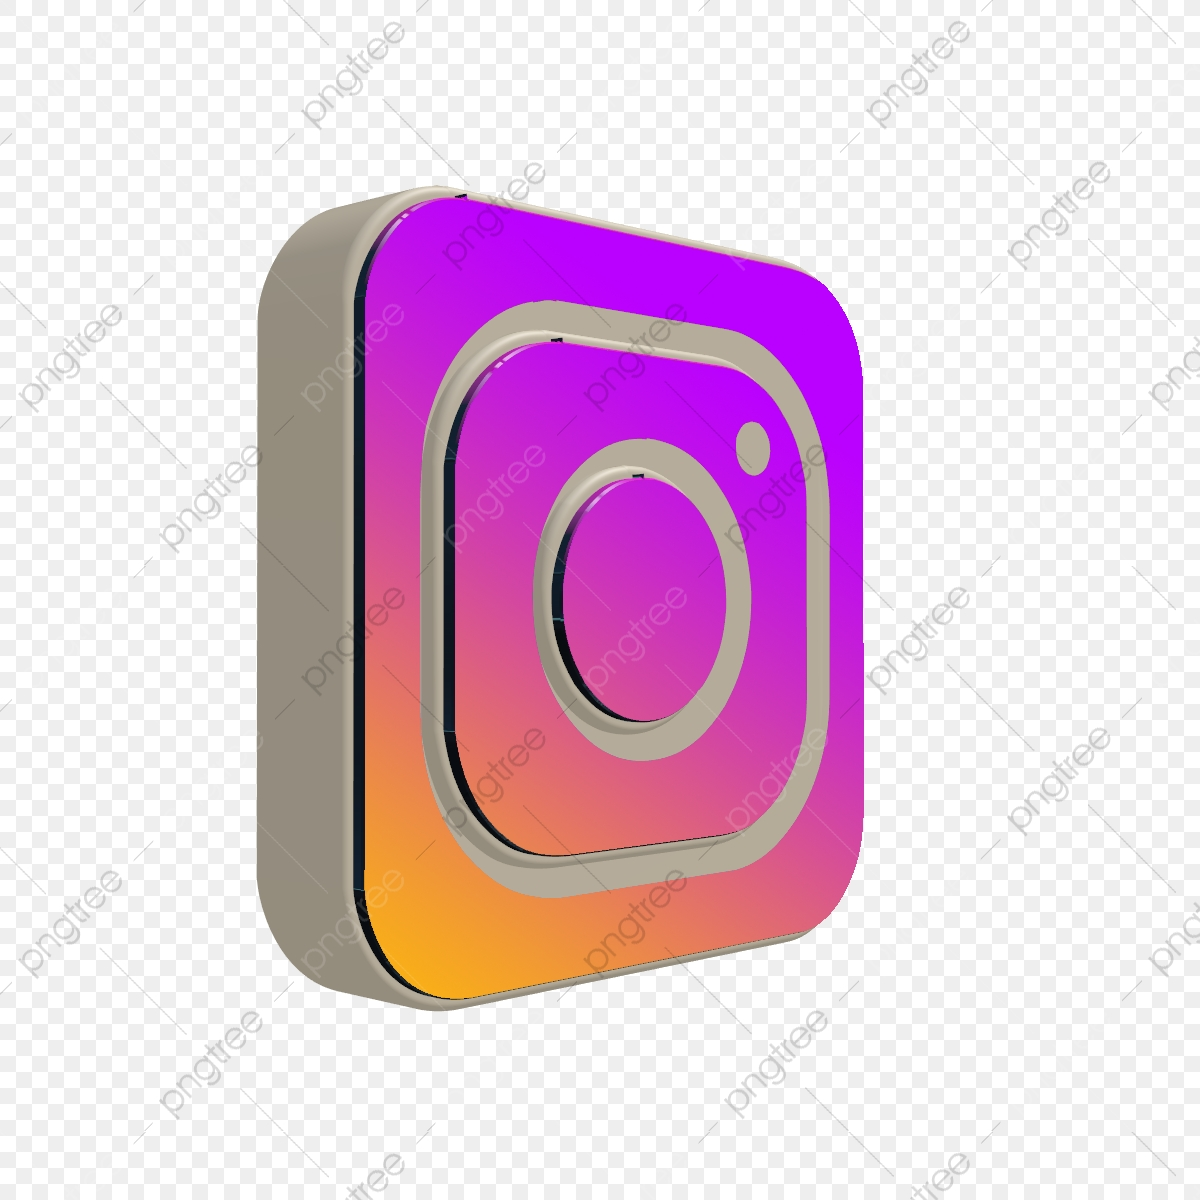 Instagram PNG Icons IG Logo PNG For Free Download